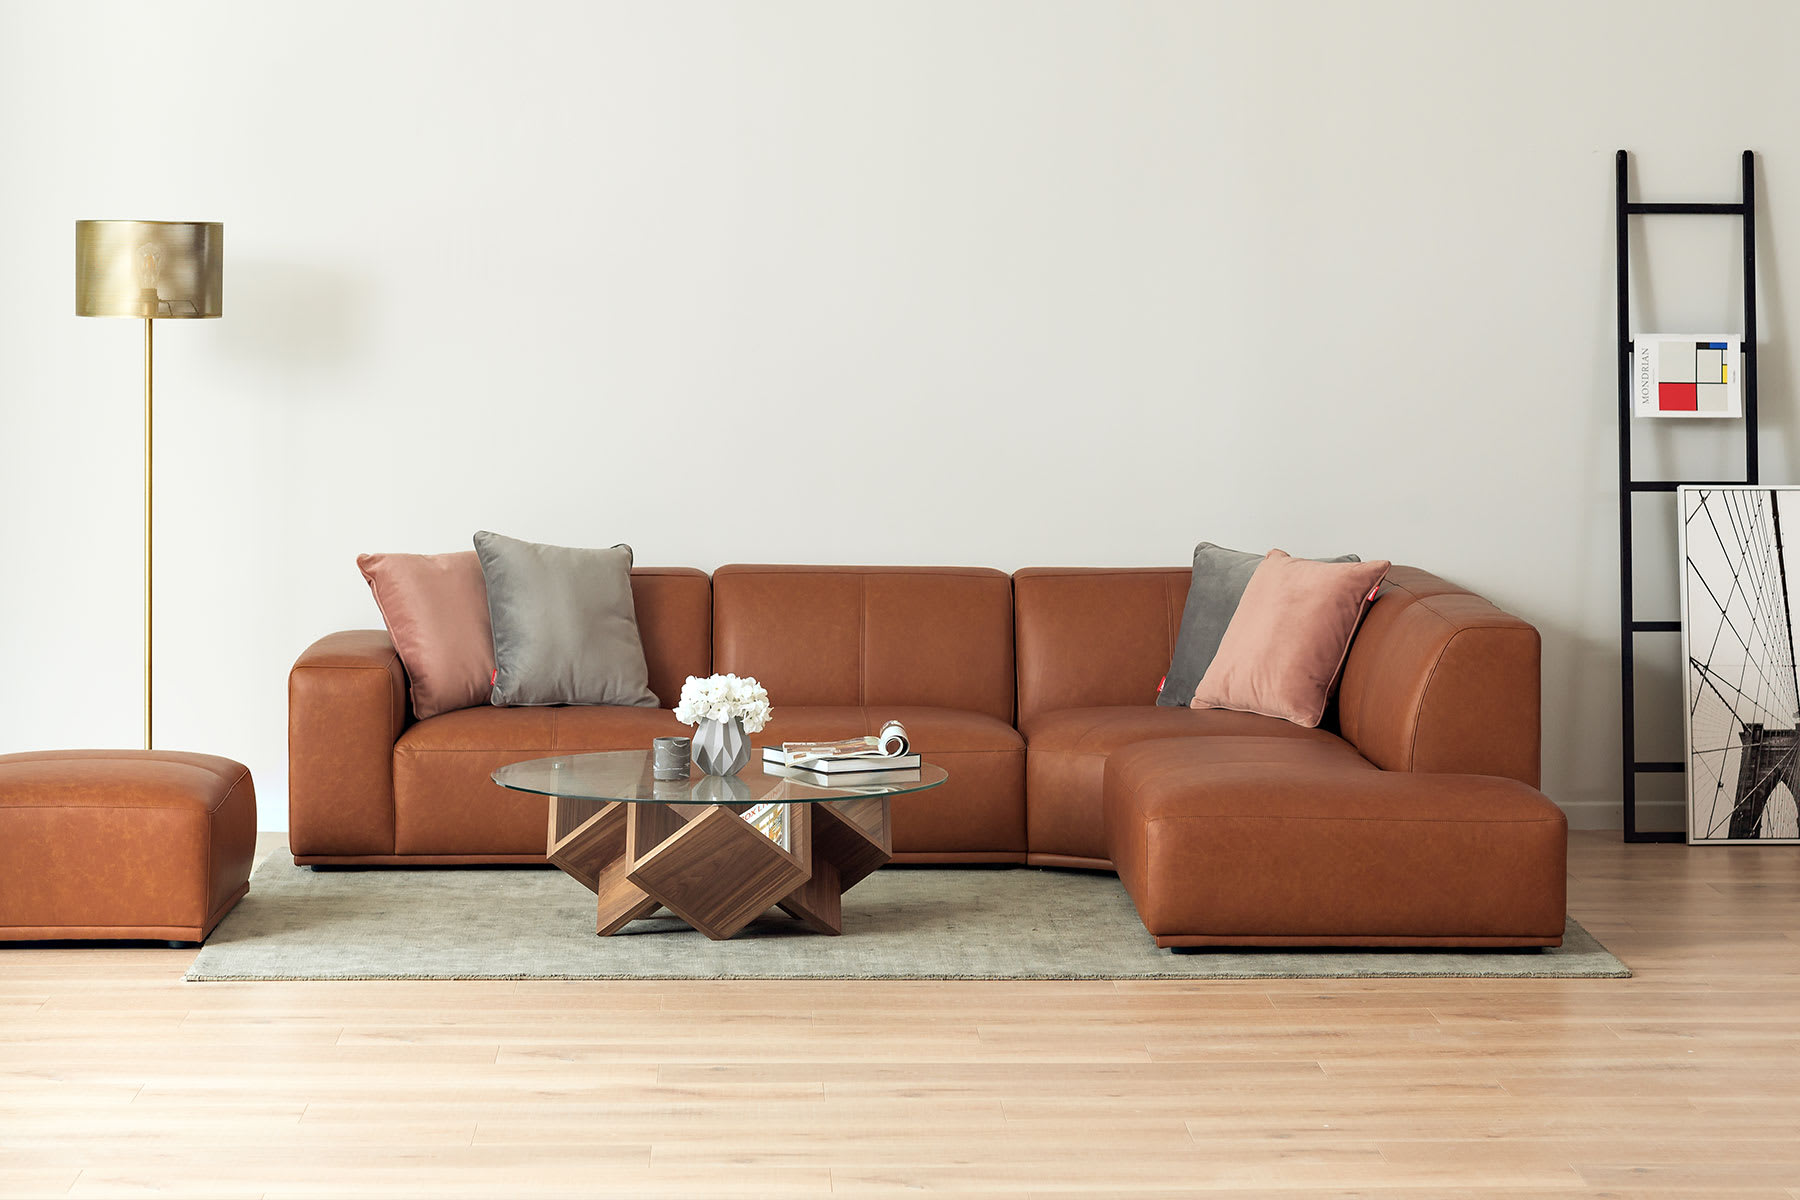 sectional chaise modular leather sofa with coffee table, rug and lamp in living room